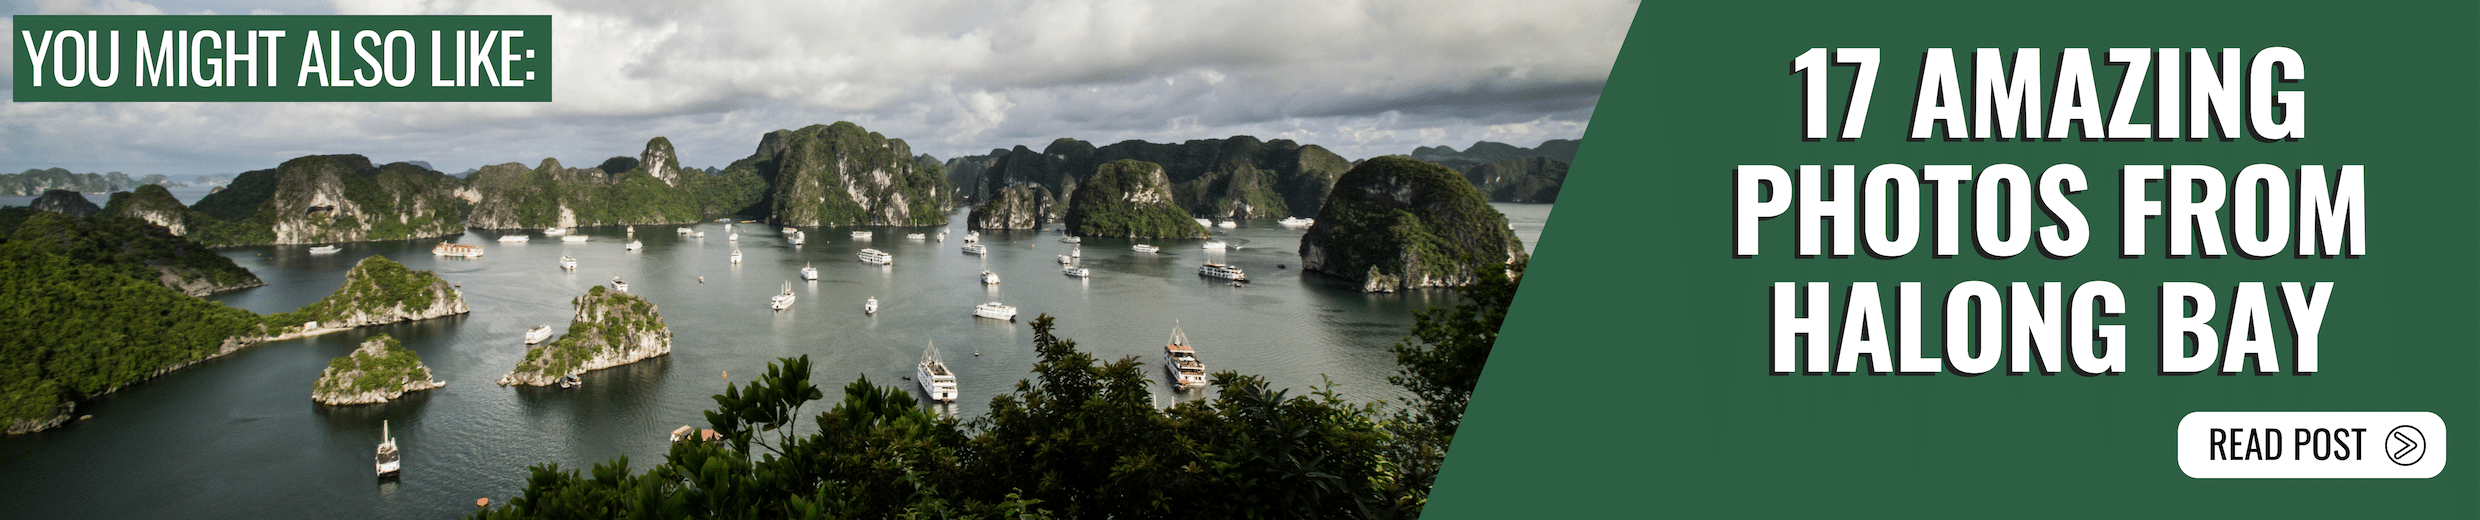 You might also like Ha Long Bay